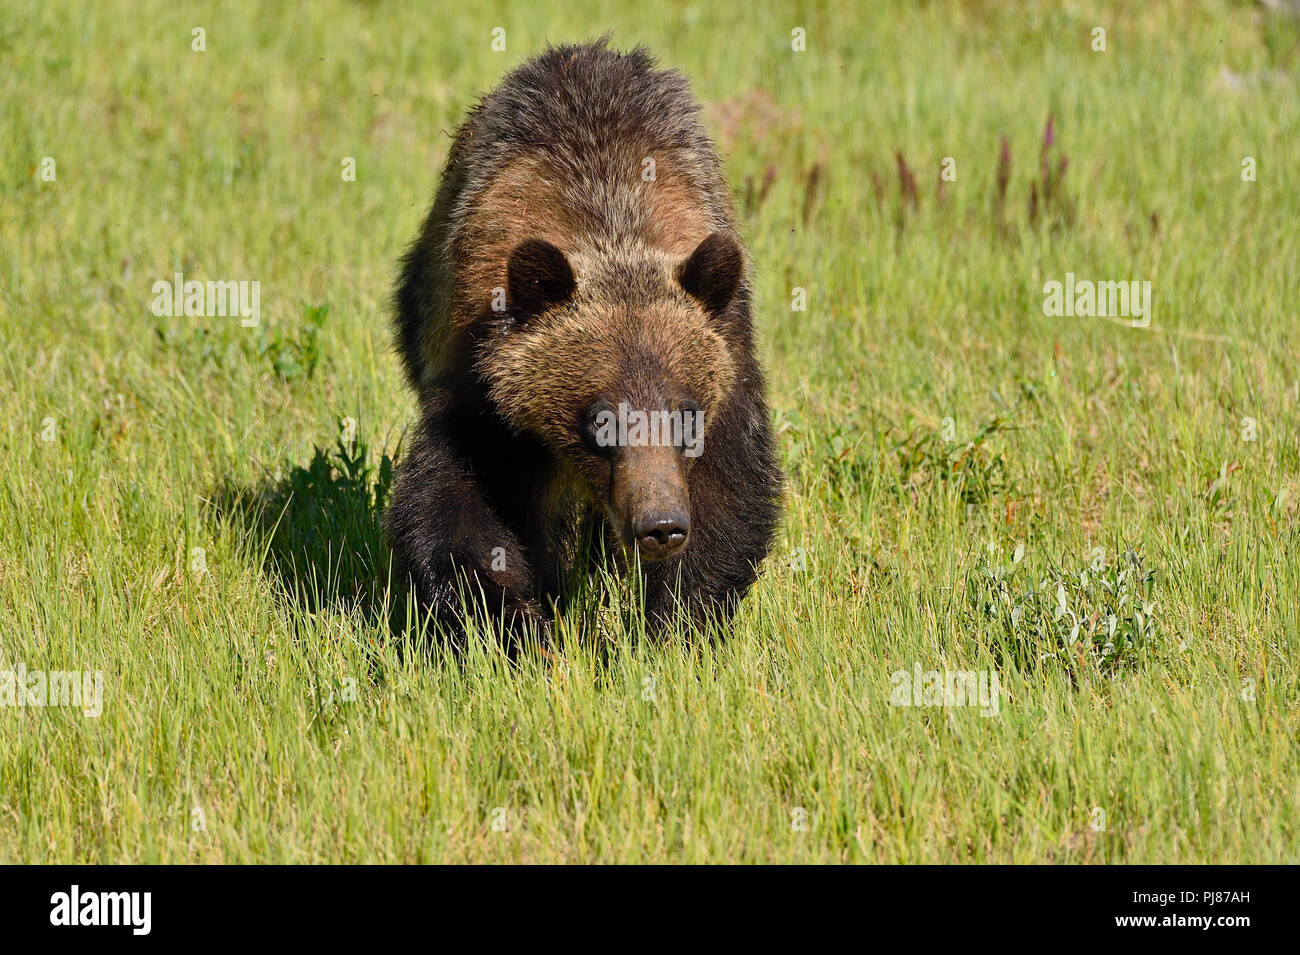 A landscape image of a young grizzly bear  Ursus arctos; walking forward with his head down through the green meadow in rural Alberta Canada. - Stock Image